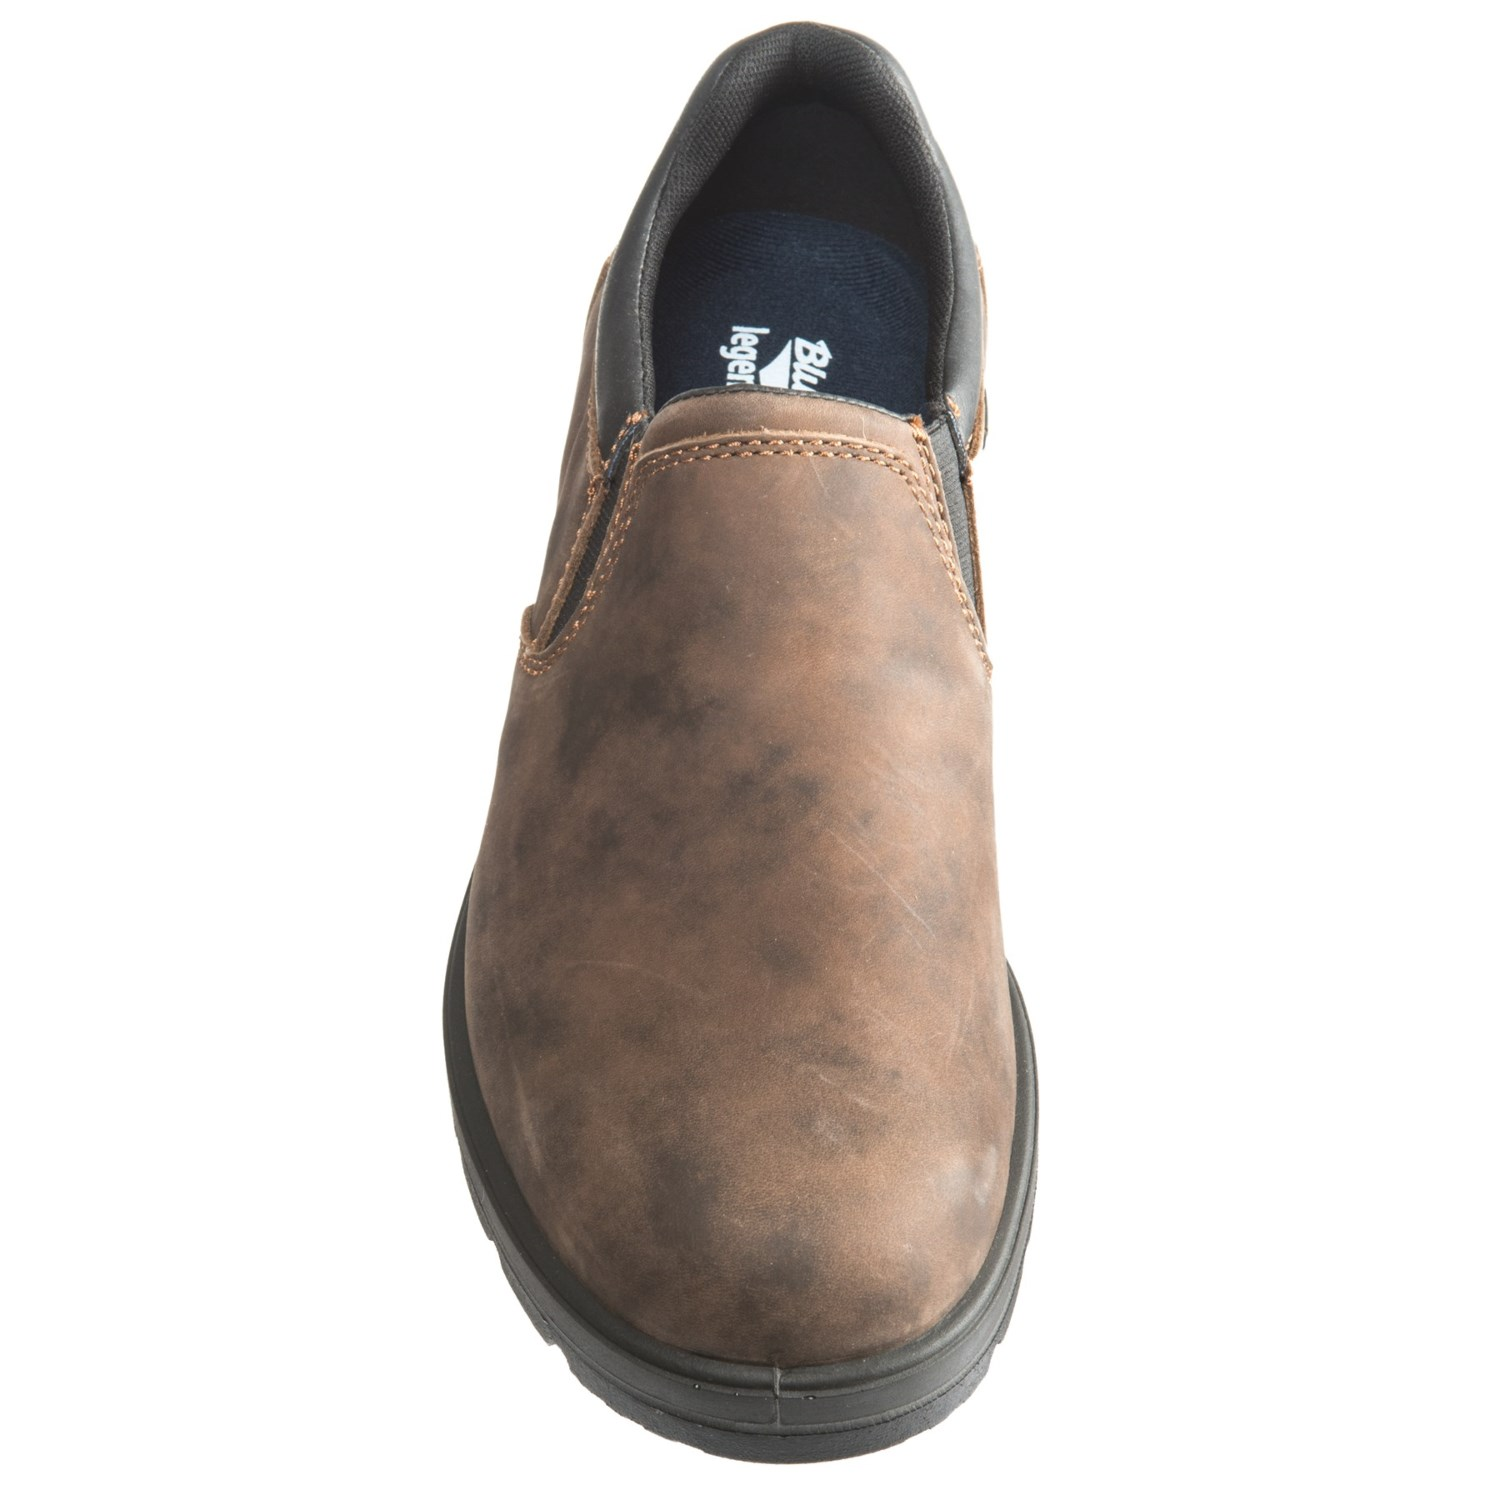 Blundstone Casual Slip-On Leather Shoes